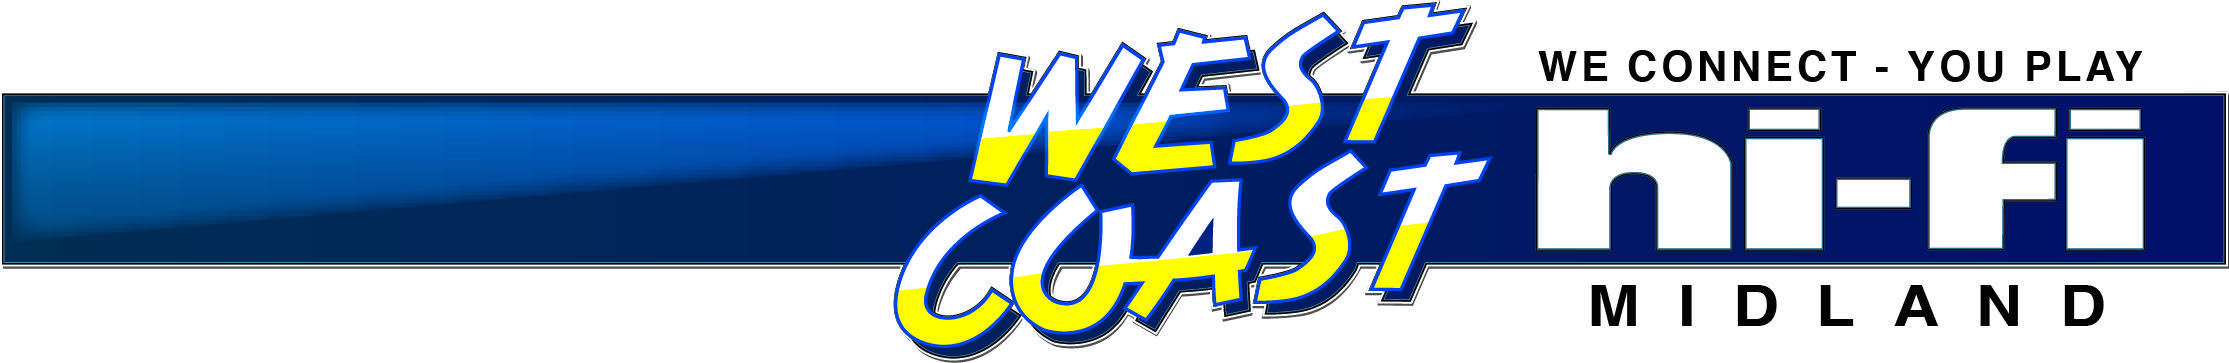 Westcoast logo_We Connect_Midland1.jpg